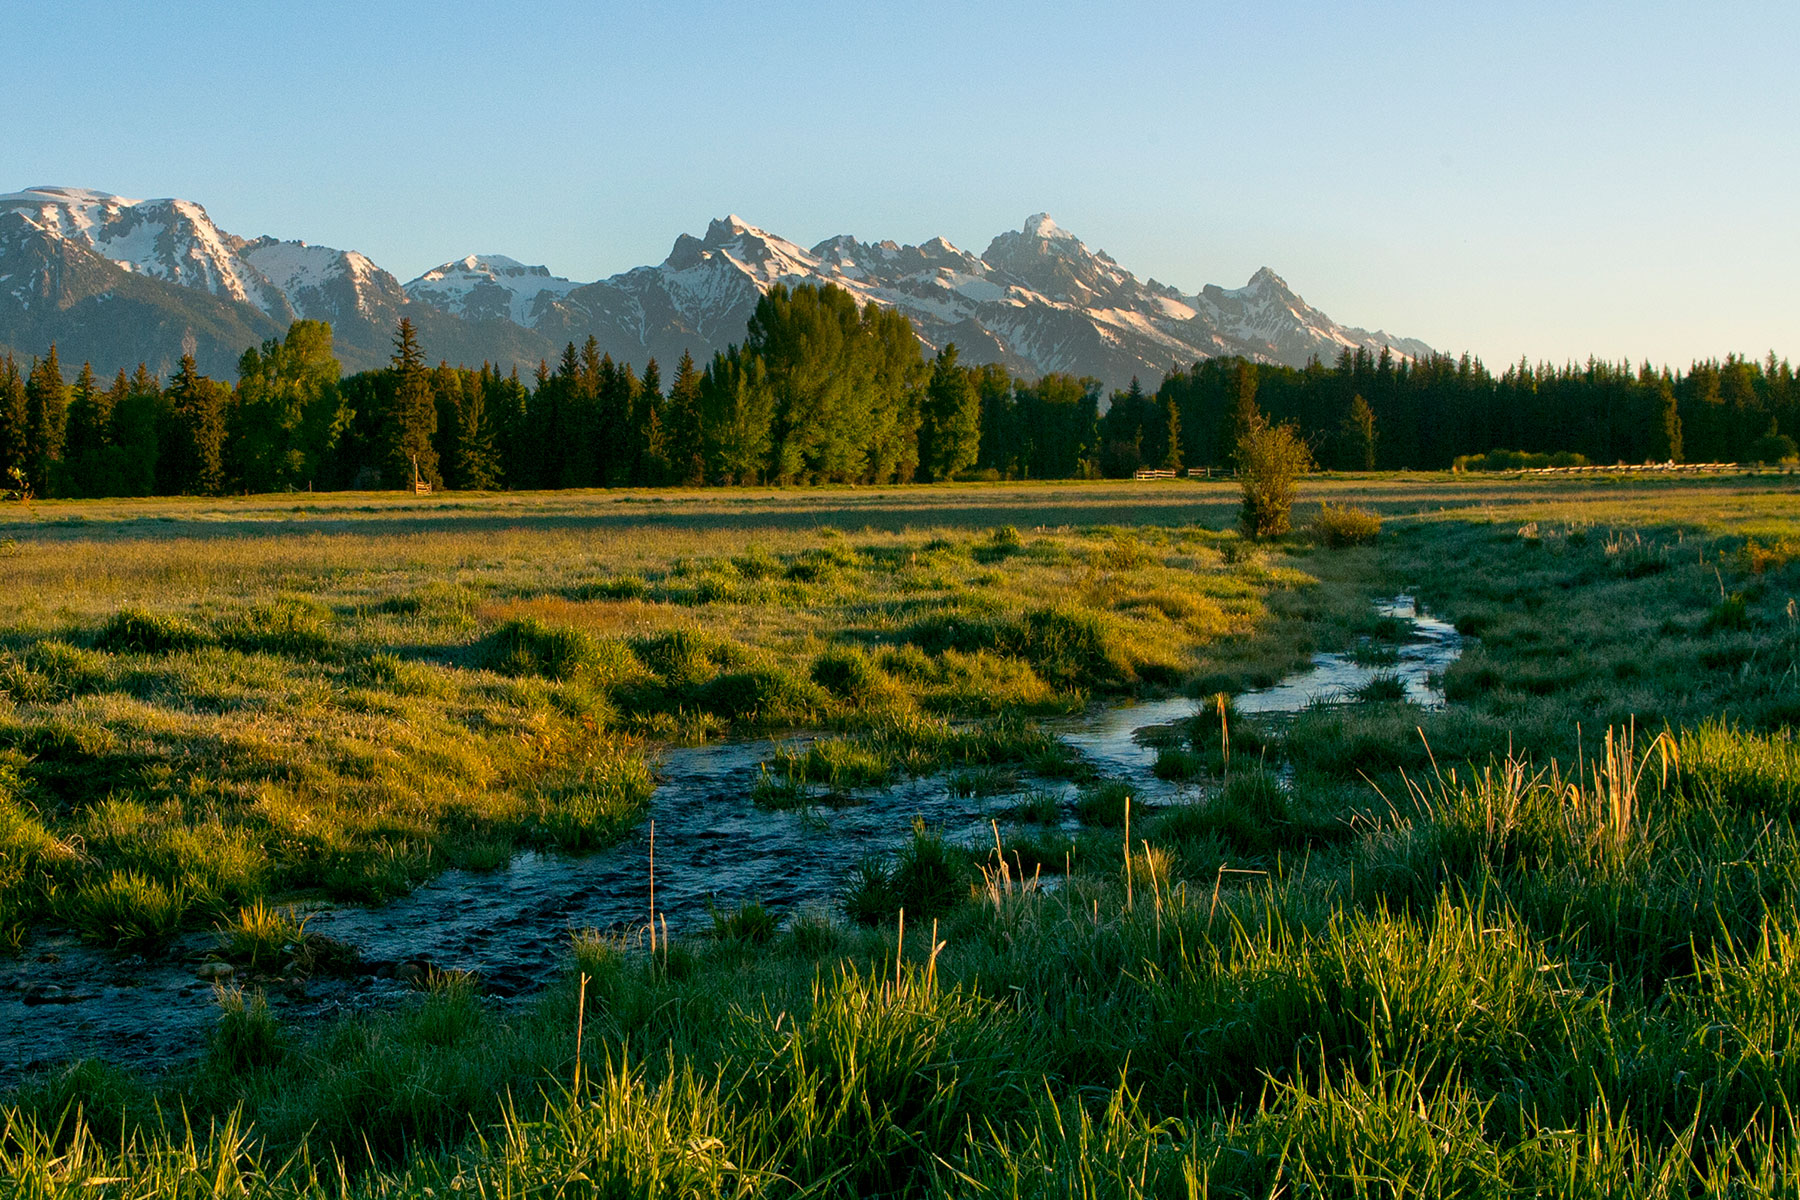 Land for Sale at Ranch Estate in Bar BC 465 W Bar BC Ranch Rd Jackson, Wyoming, 83001 Jackson Hole, United States